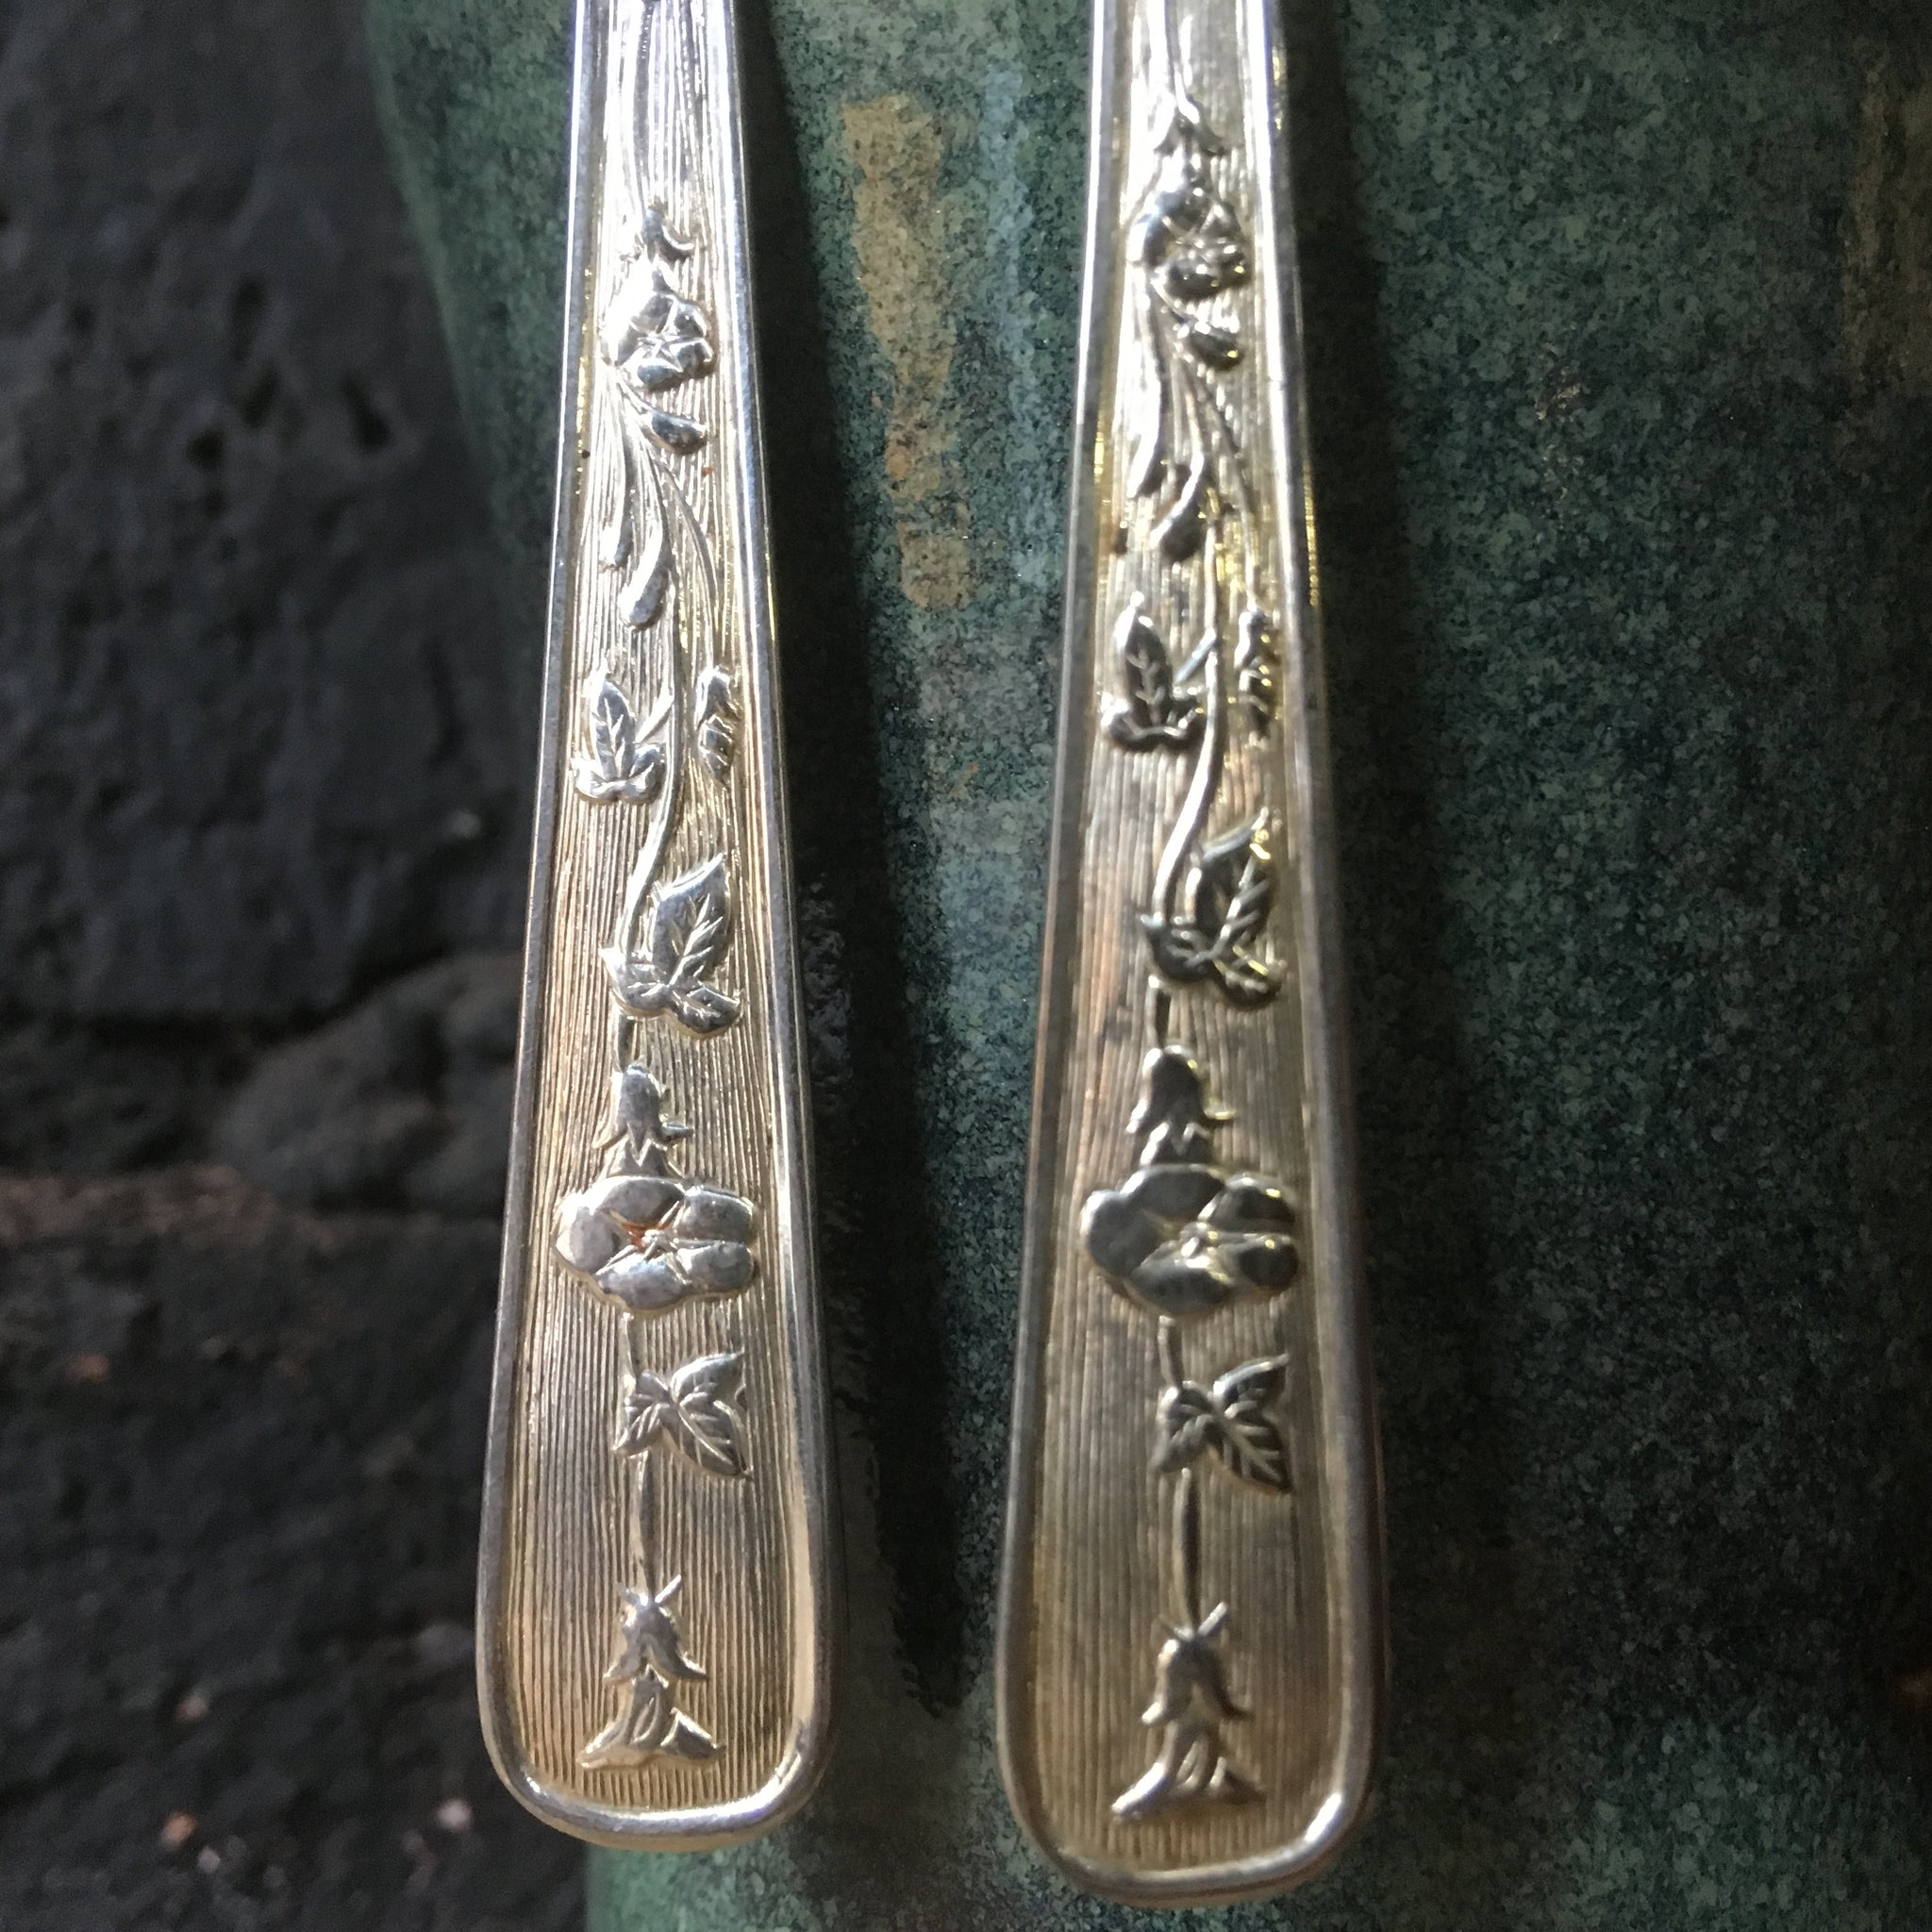 Earrings handcrafted from vintage spoons